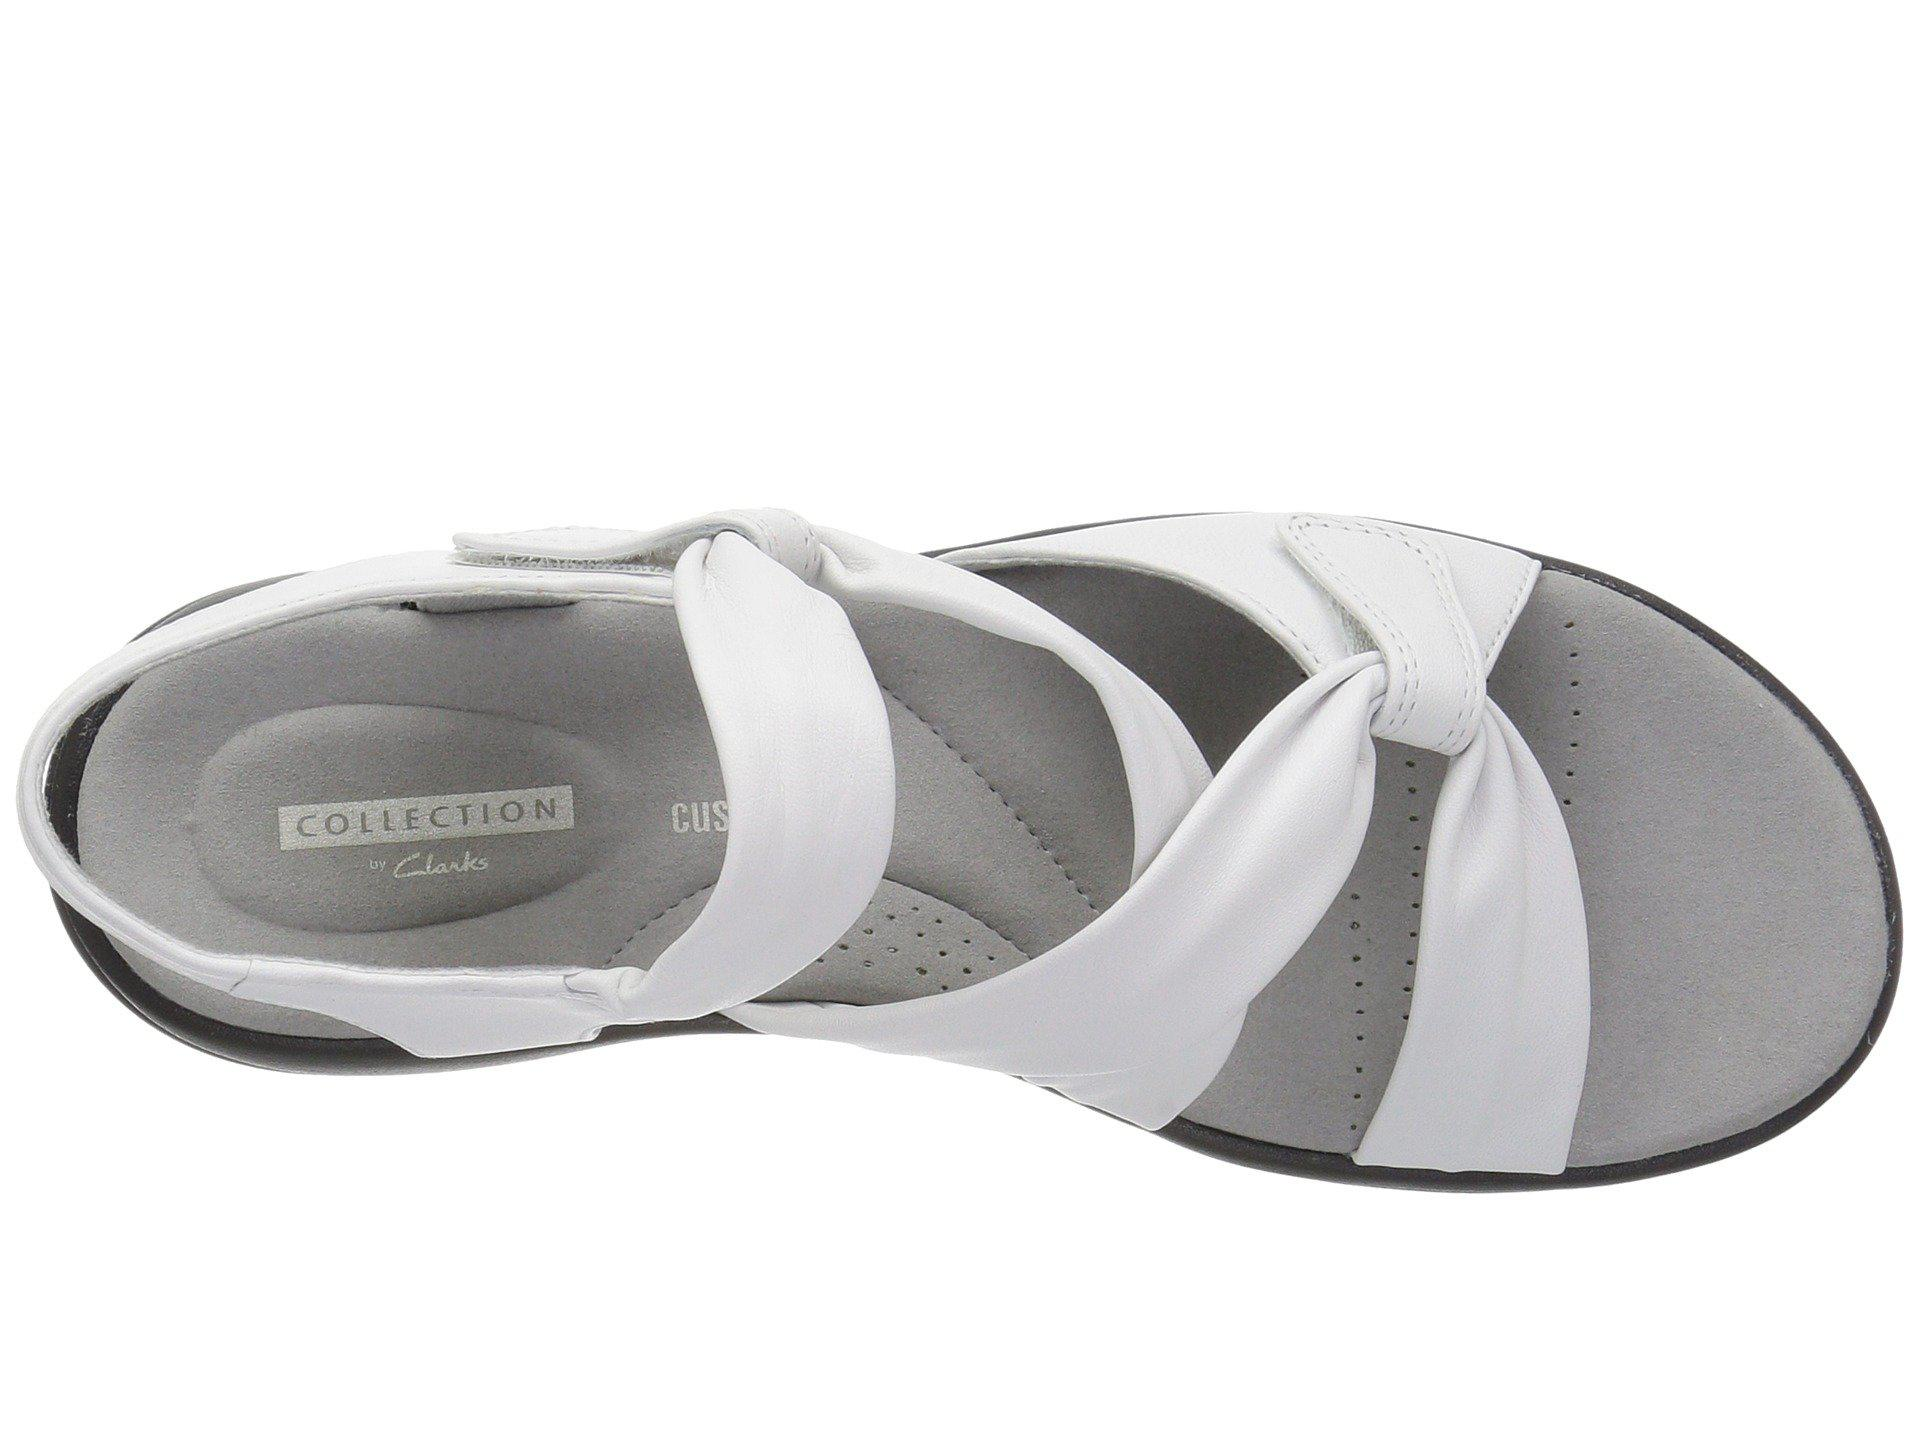 e466d58fbad Clarks - White Saylie Moon (pewter Metallic Leather) Women s Sandals -  Lyst. View fullscreen